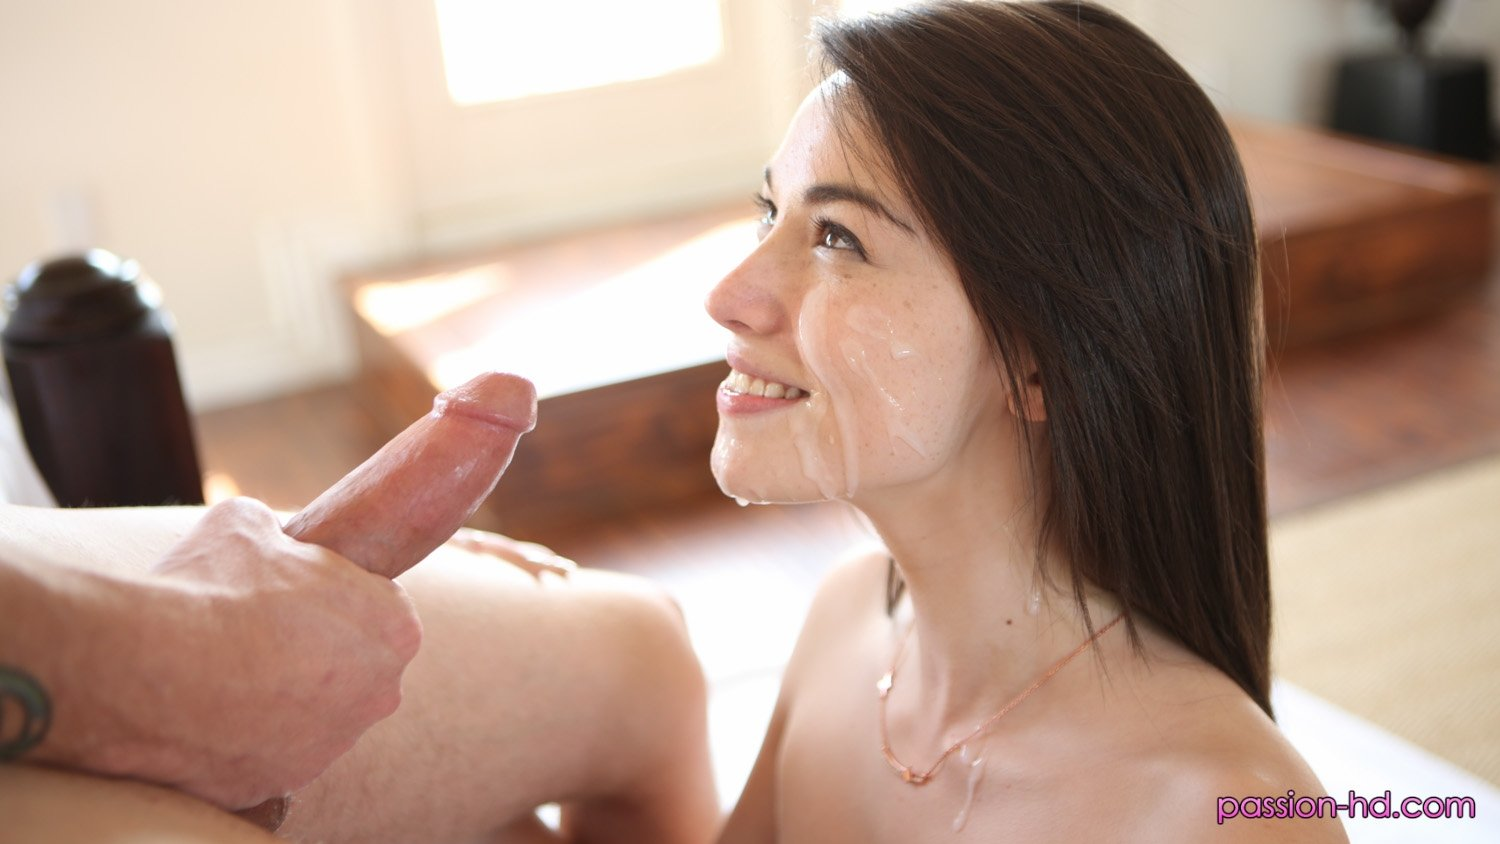 Amateur adult video free streaming